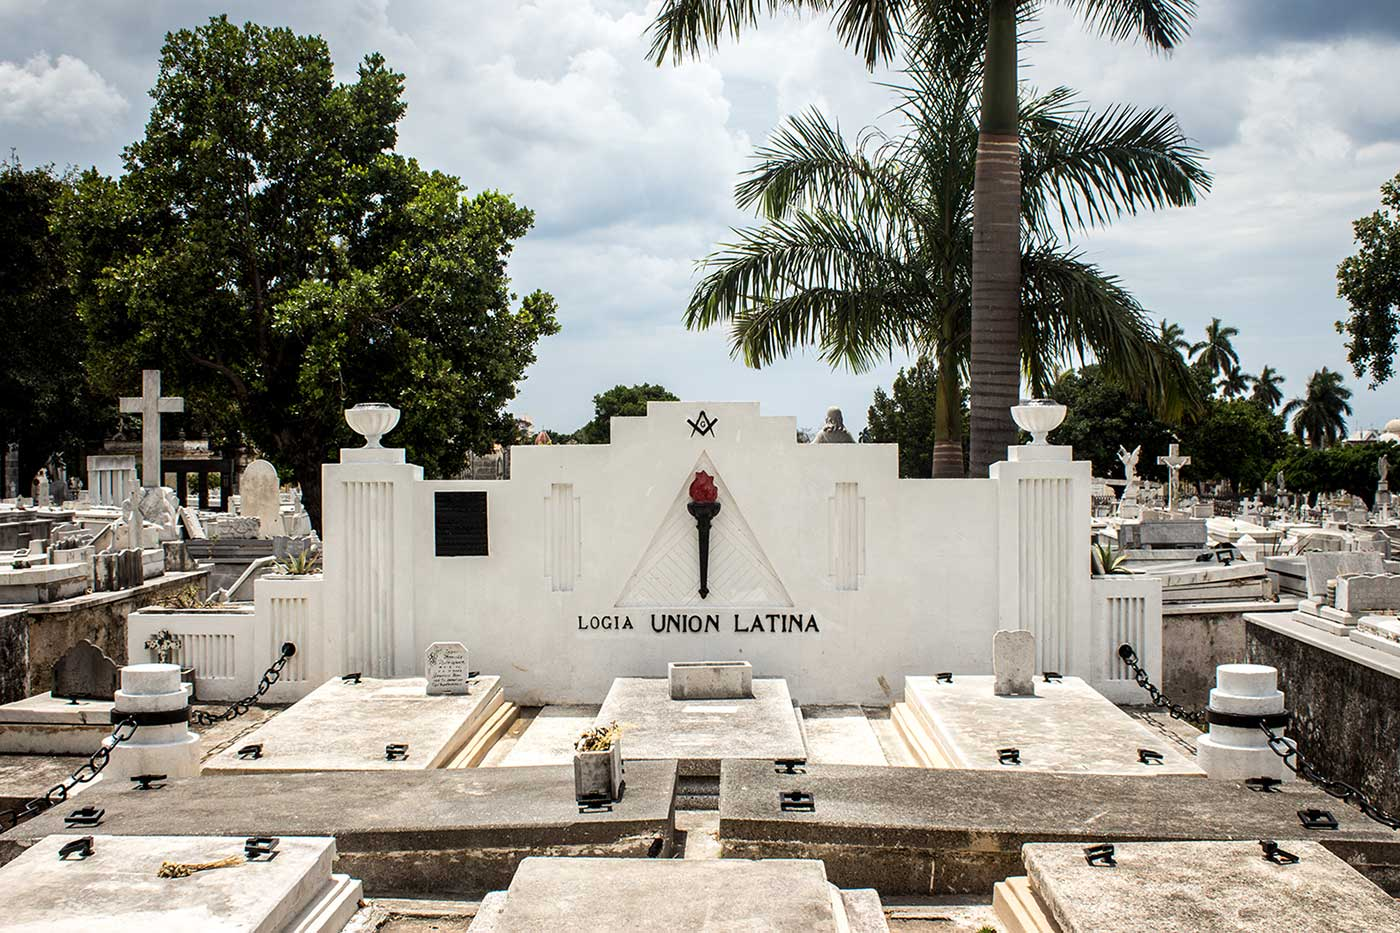 Memorial plot for 'Logia Union Latina': Necrópolis Cristóbal Colón, Havana, Cuba.